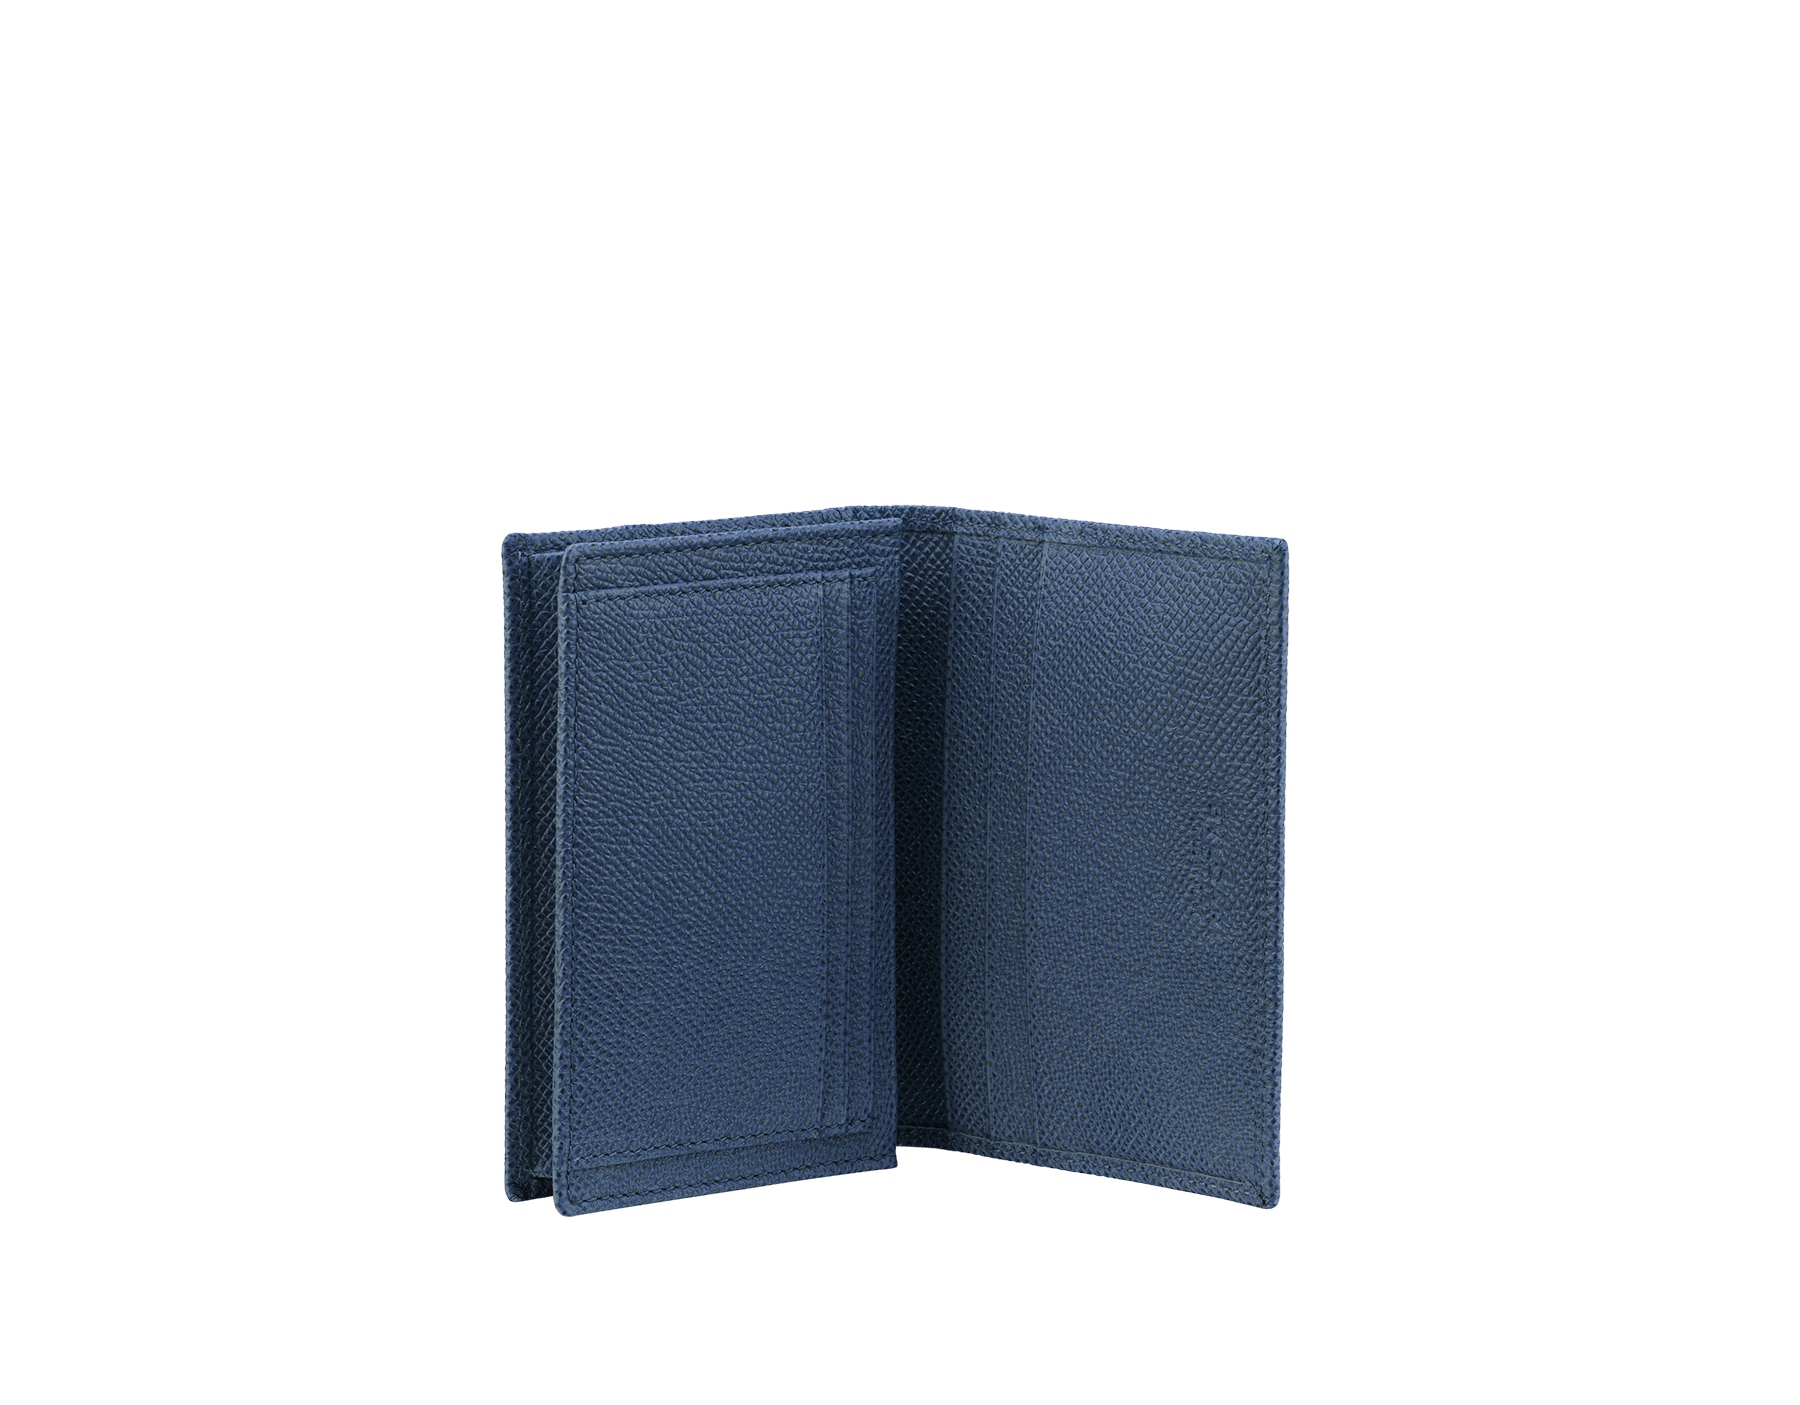 Business card holder in denim sapphire grain calf leather with brass palladium plated Bulgari Bulgari motif. Three credit card slots, one open pocket and business cards compartment. BBM-BC-HOLD-SIMPLEa image 2